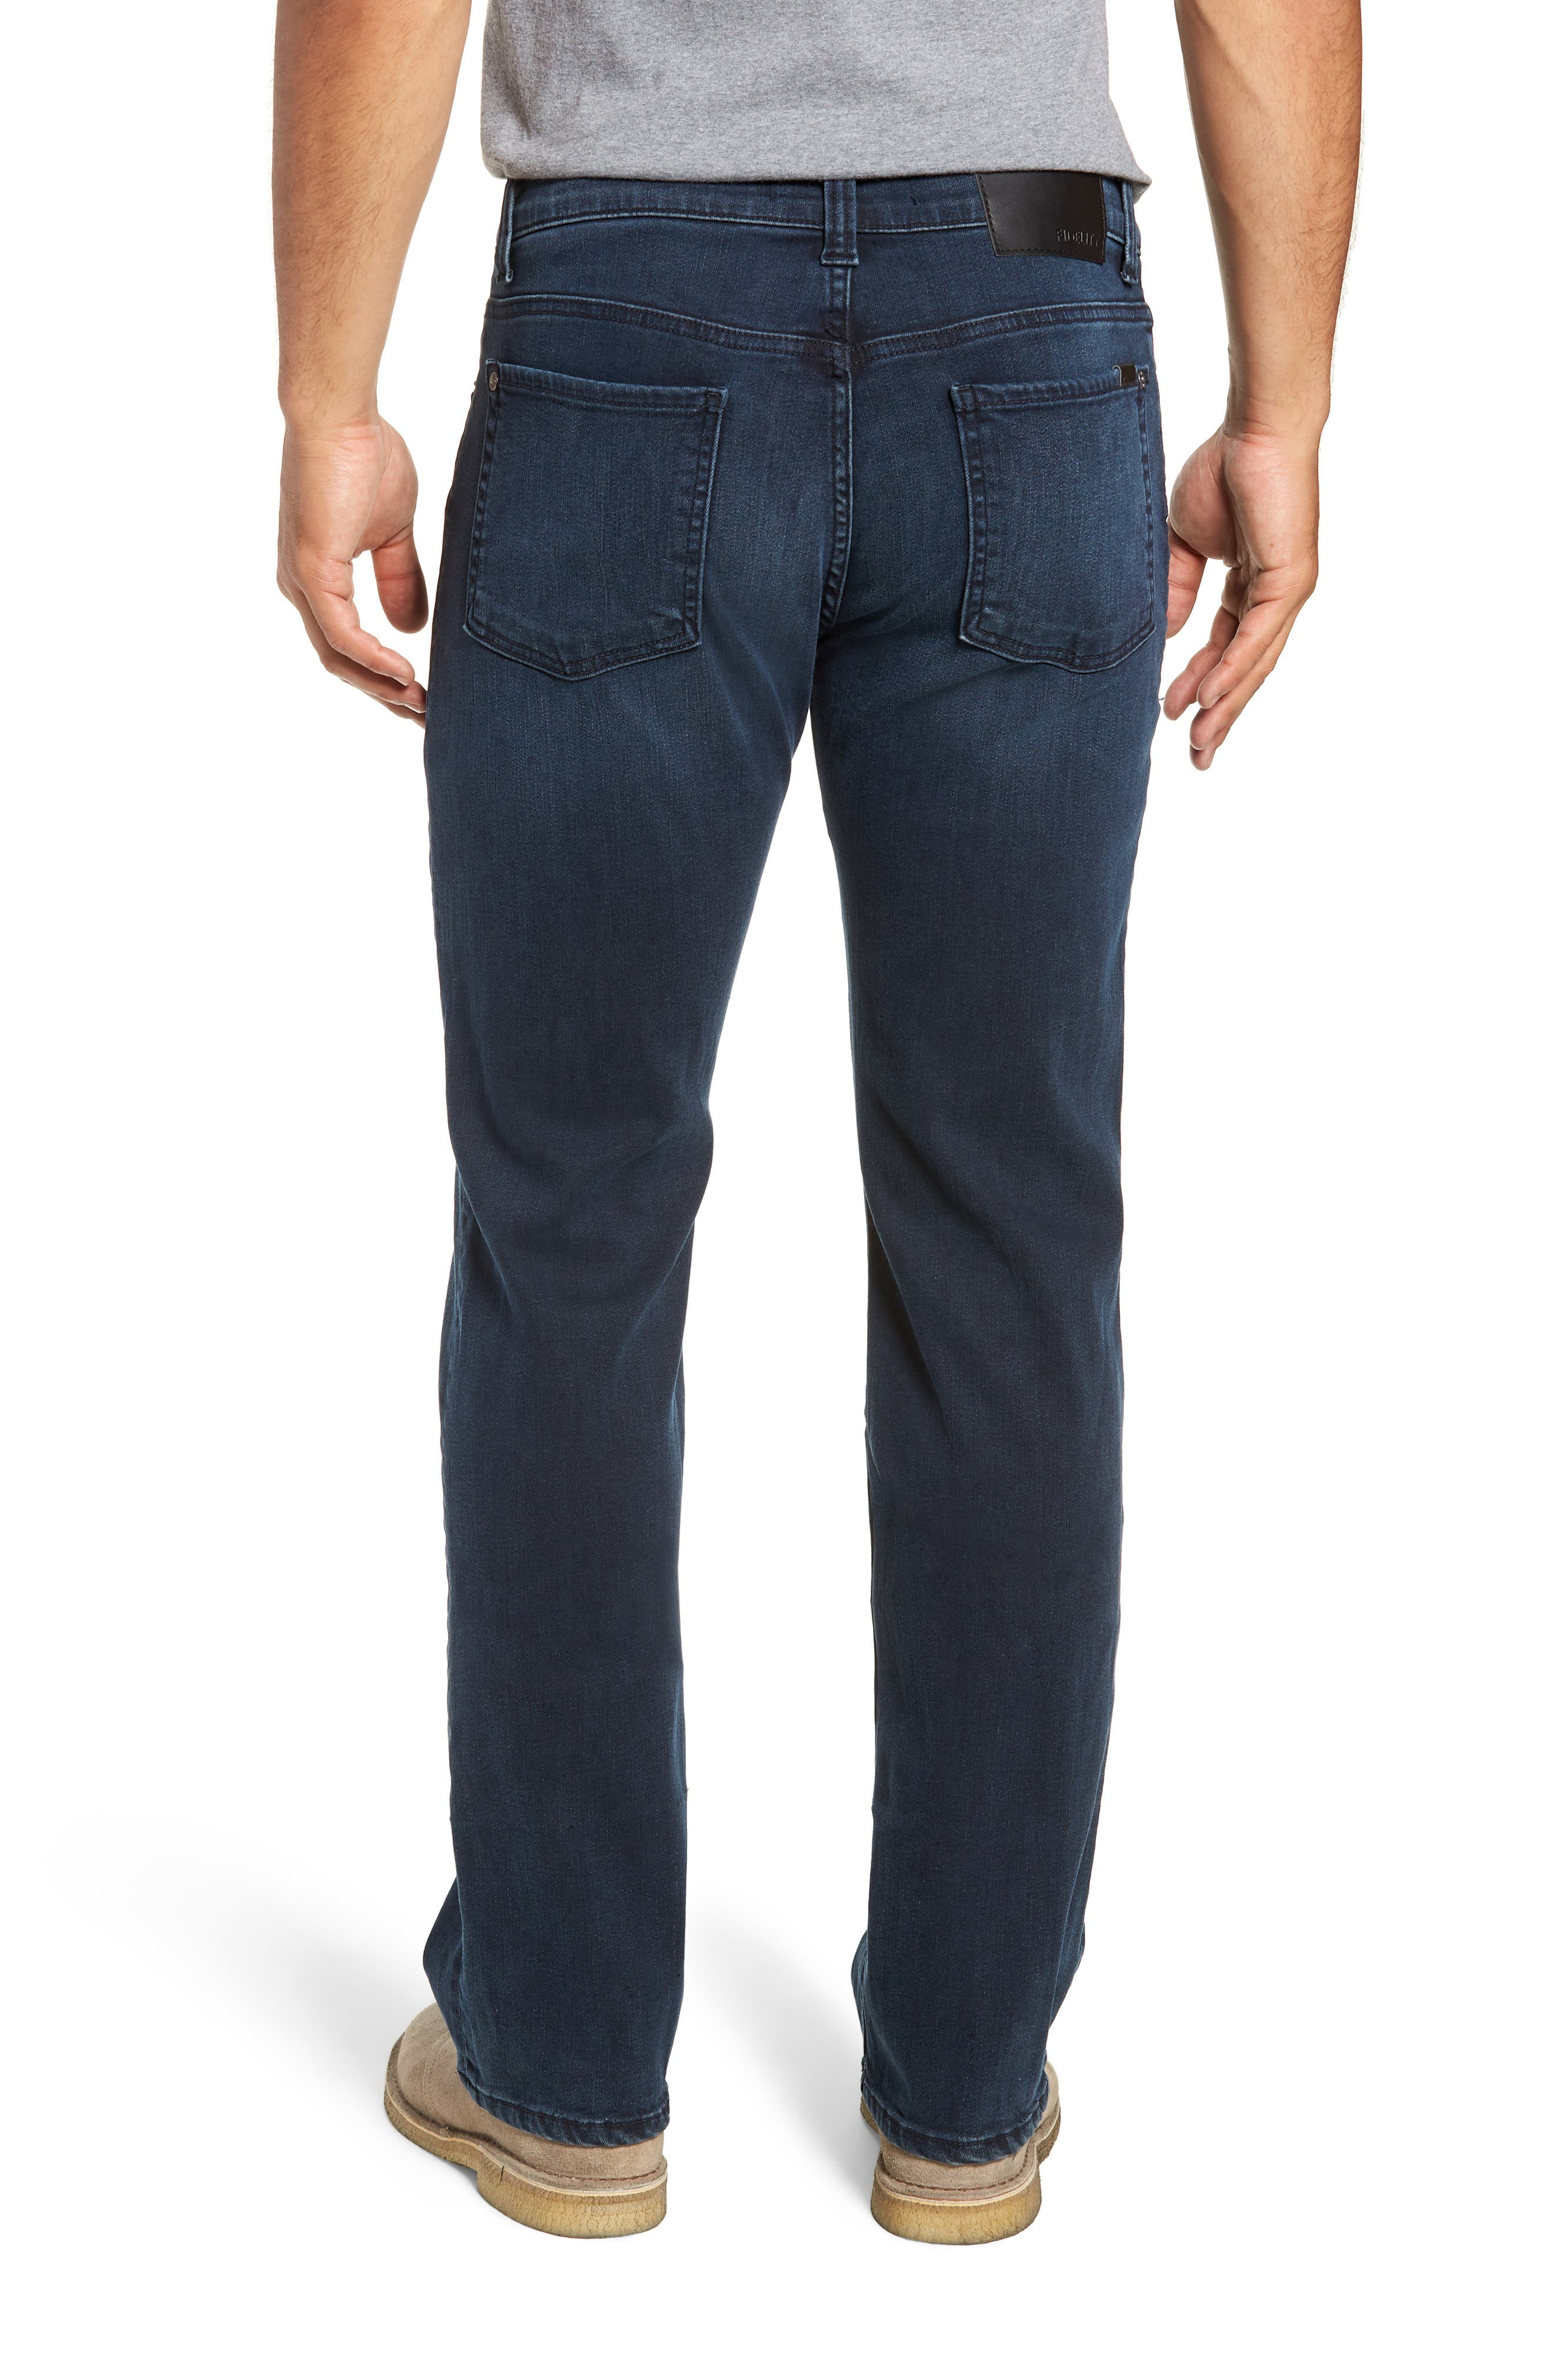 50-11 Relaxed Fit Jeans,                             Alternate thumbnail 2, color,                             MILLI BLUE